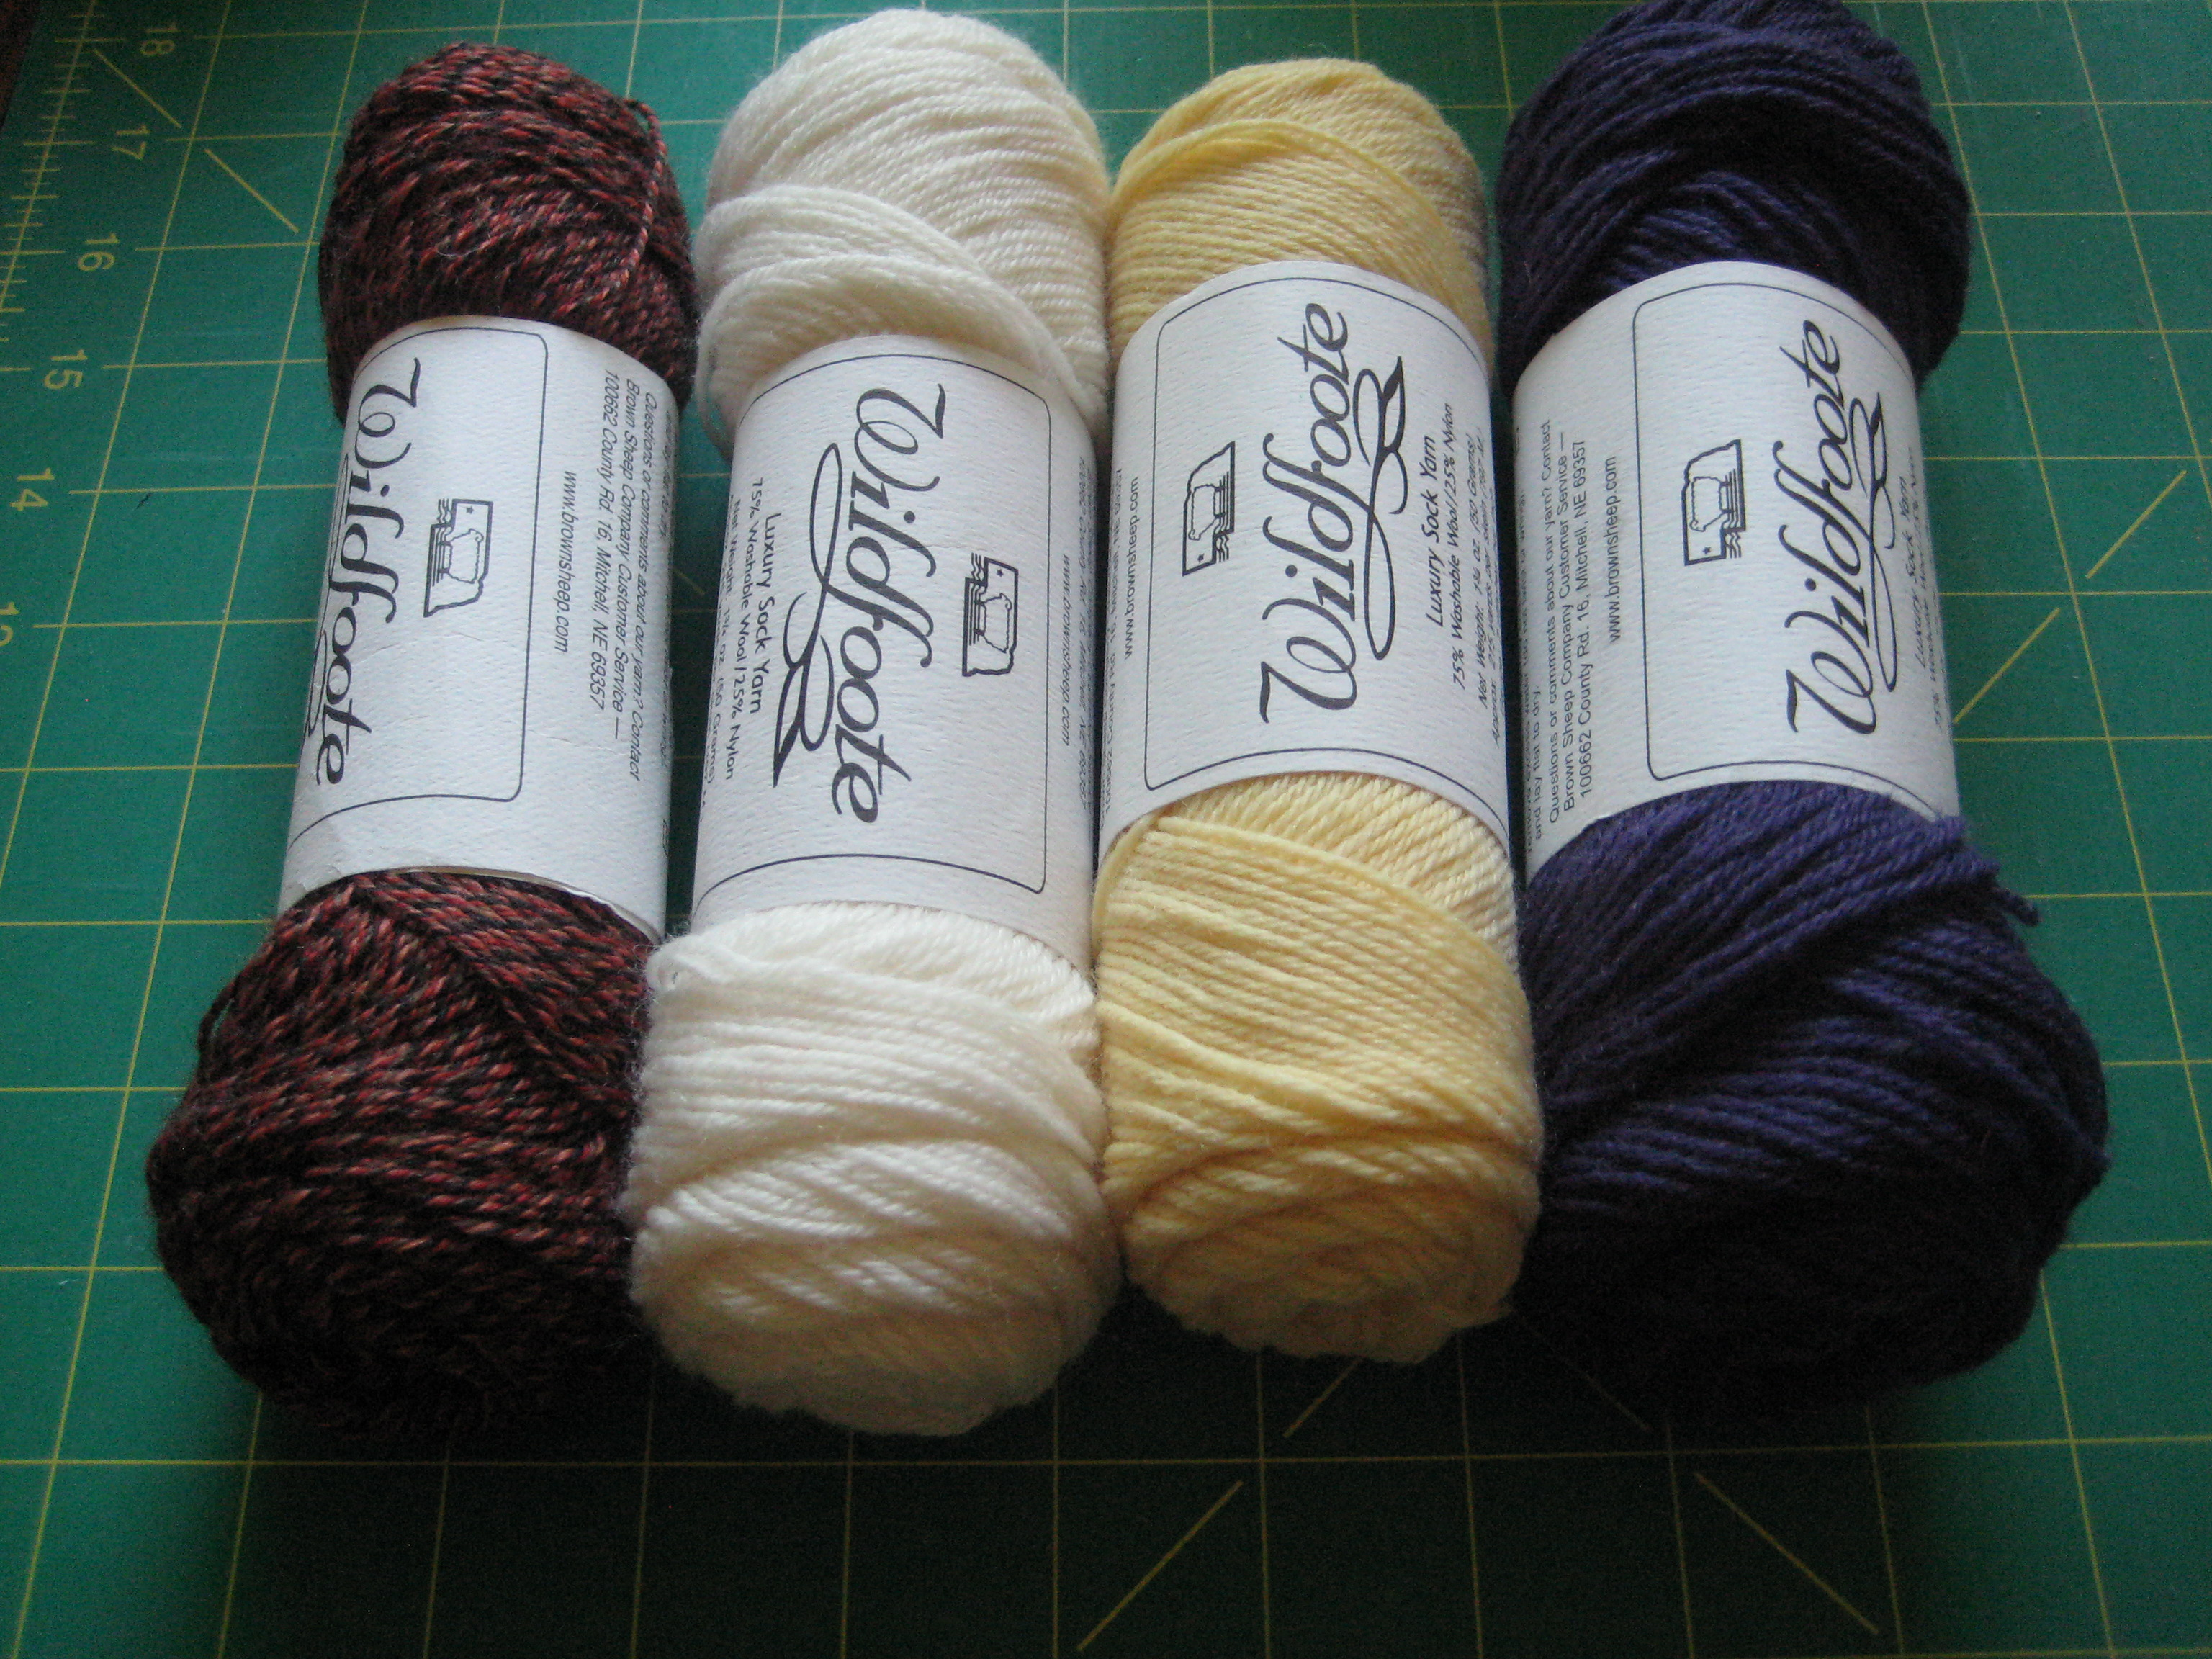 Wildfoote Fingering Yarn by Brown Sheep- Tan to Purple